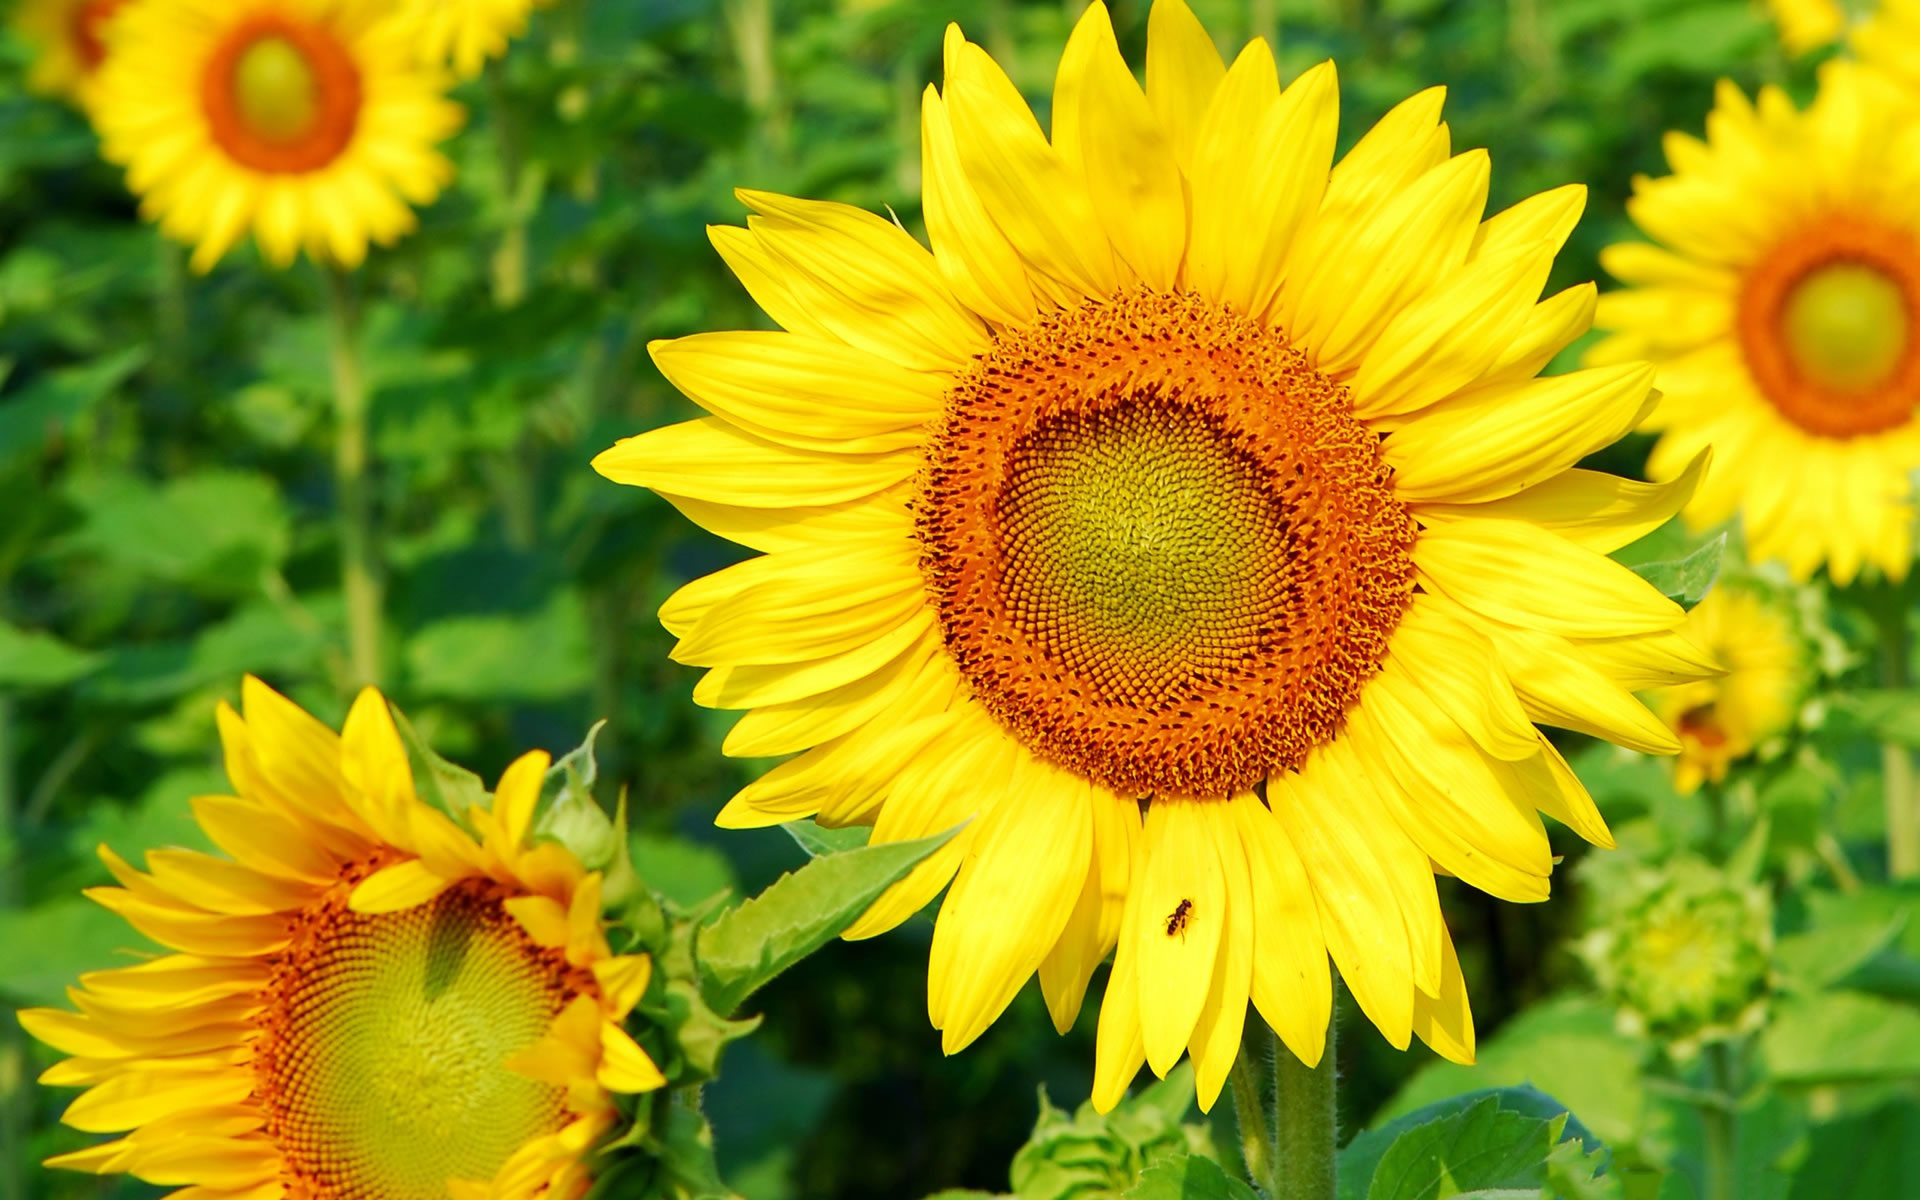 sunflowers free download